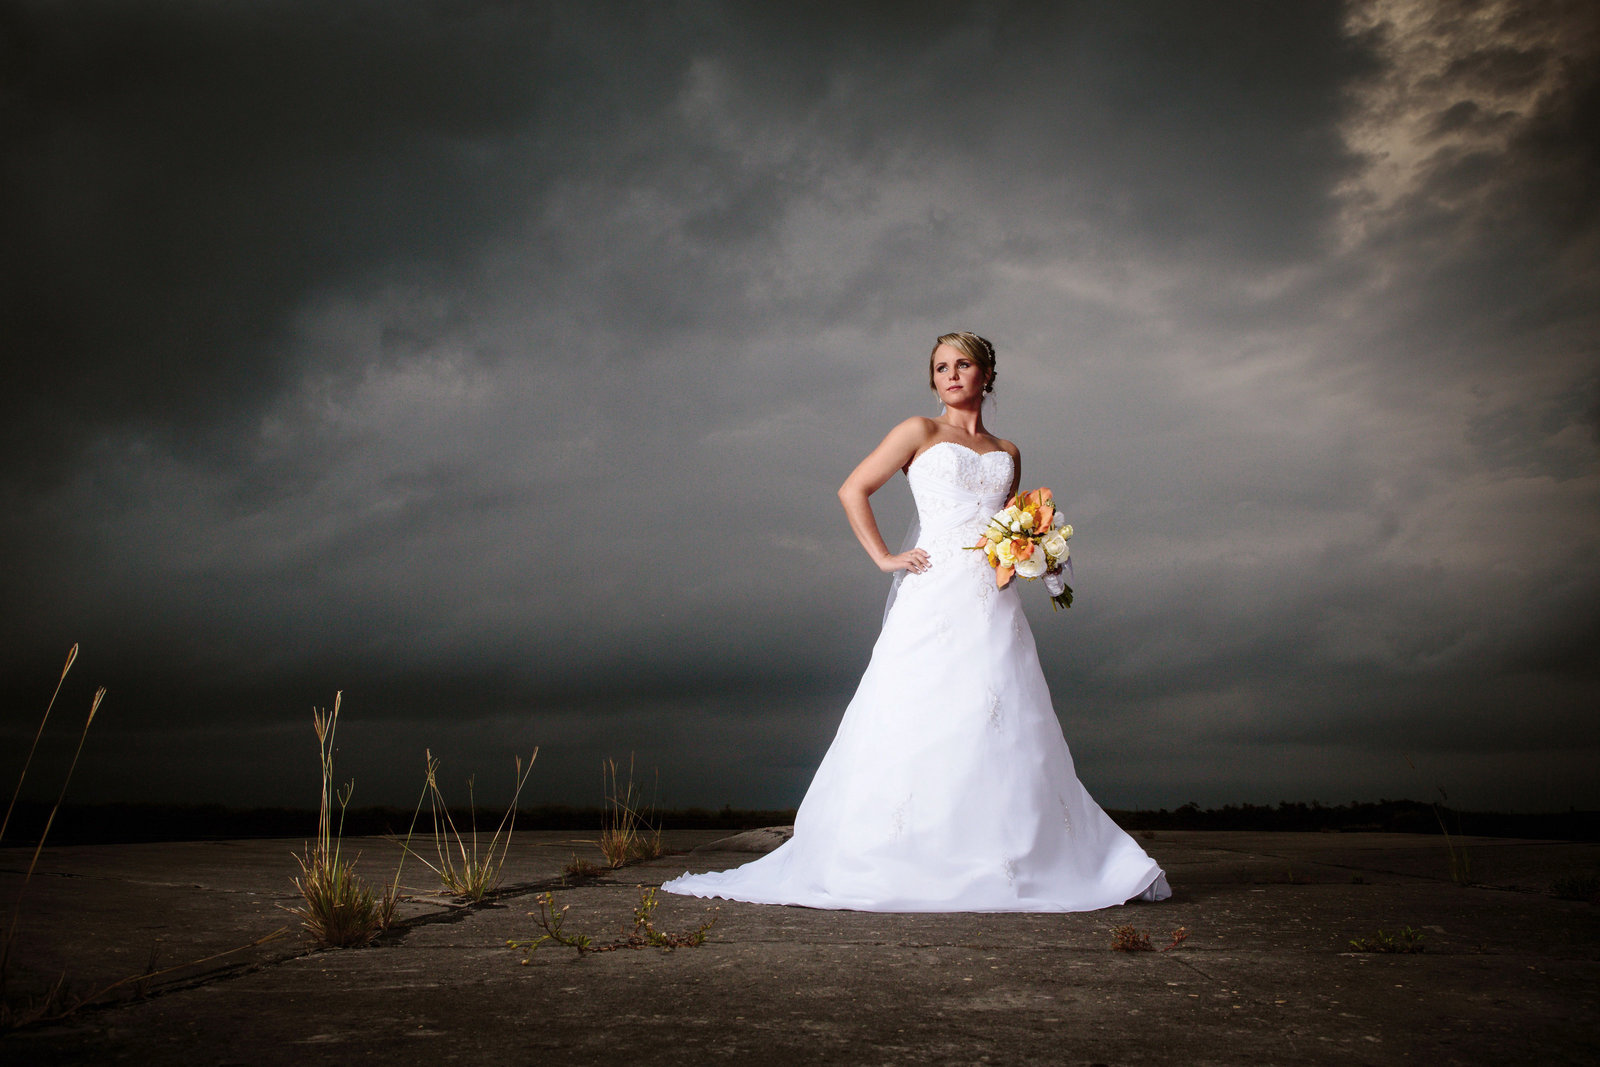 Sydney Boutwell bridal session at Ft. Morgan State Park in Fort Morgan, Alabama.